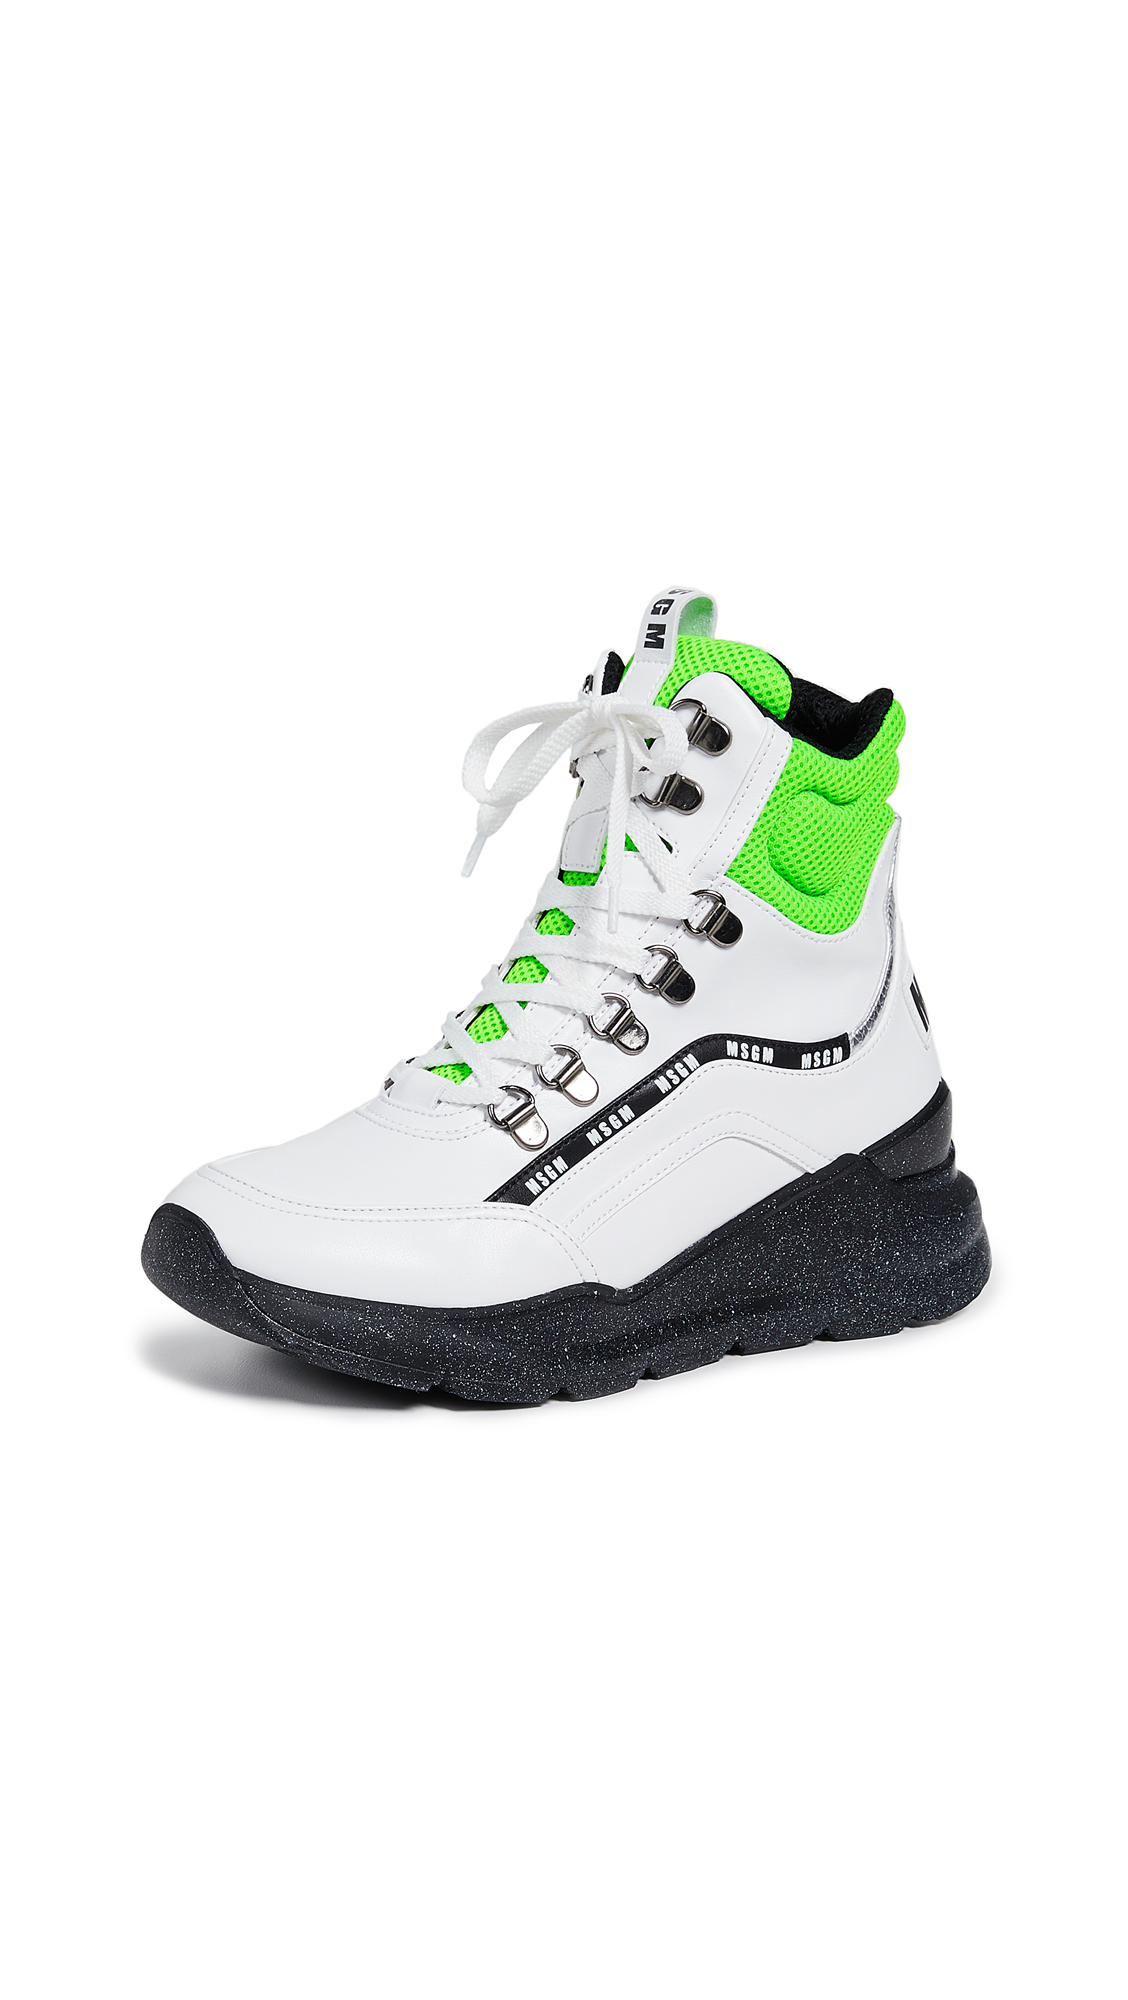 MSGM Chunky Running Lace Up Mid Sneakers - White/Neon Green